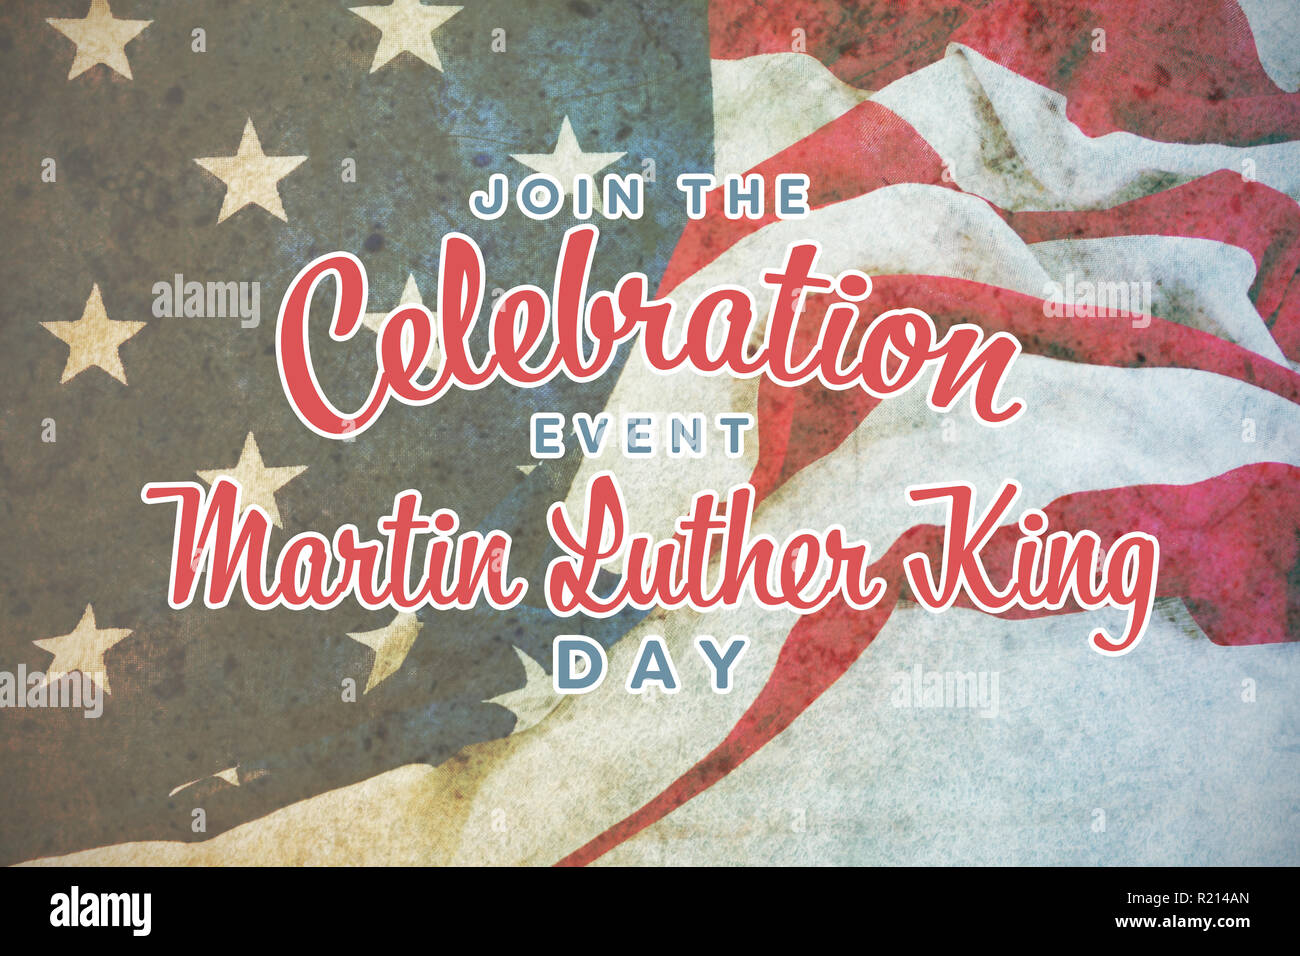 Composite image of join the celebration event martin luther king day - Stock Image